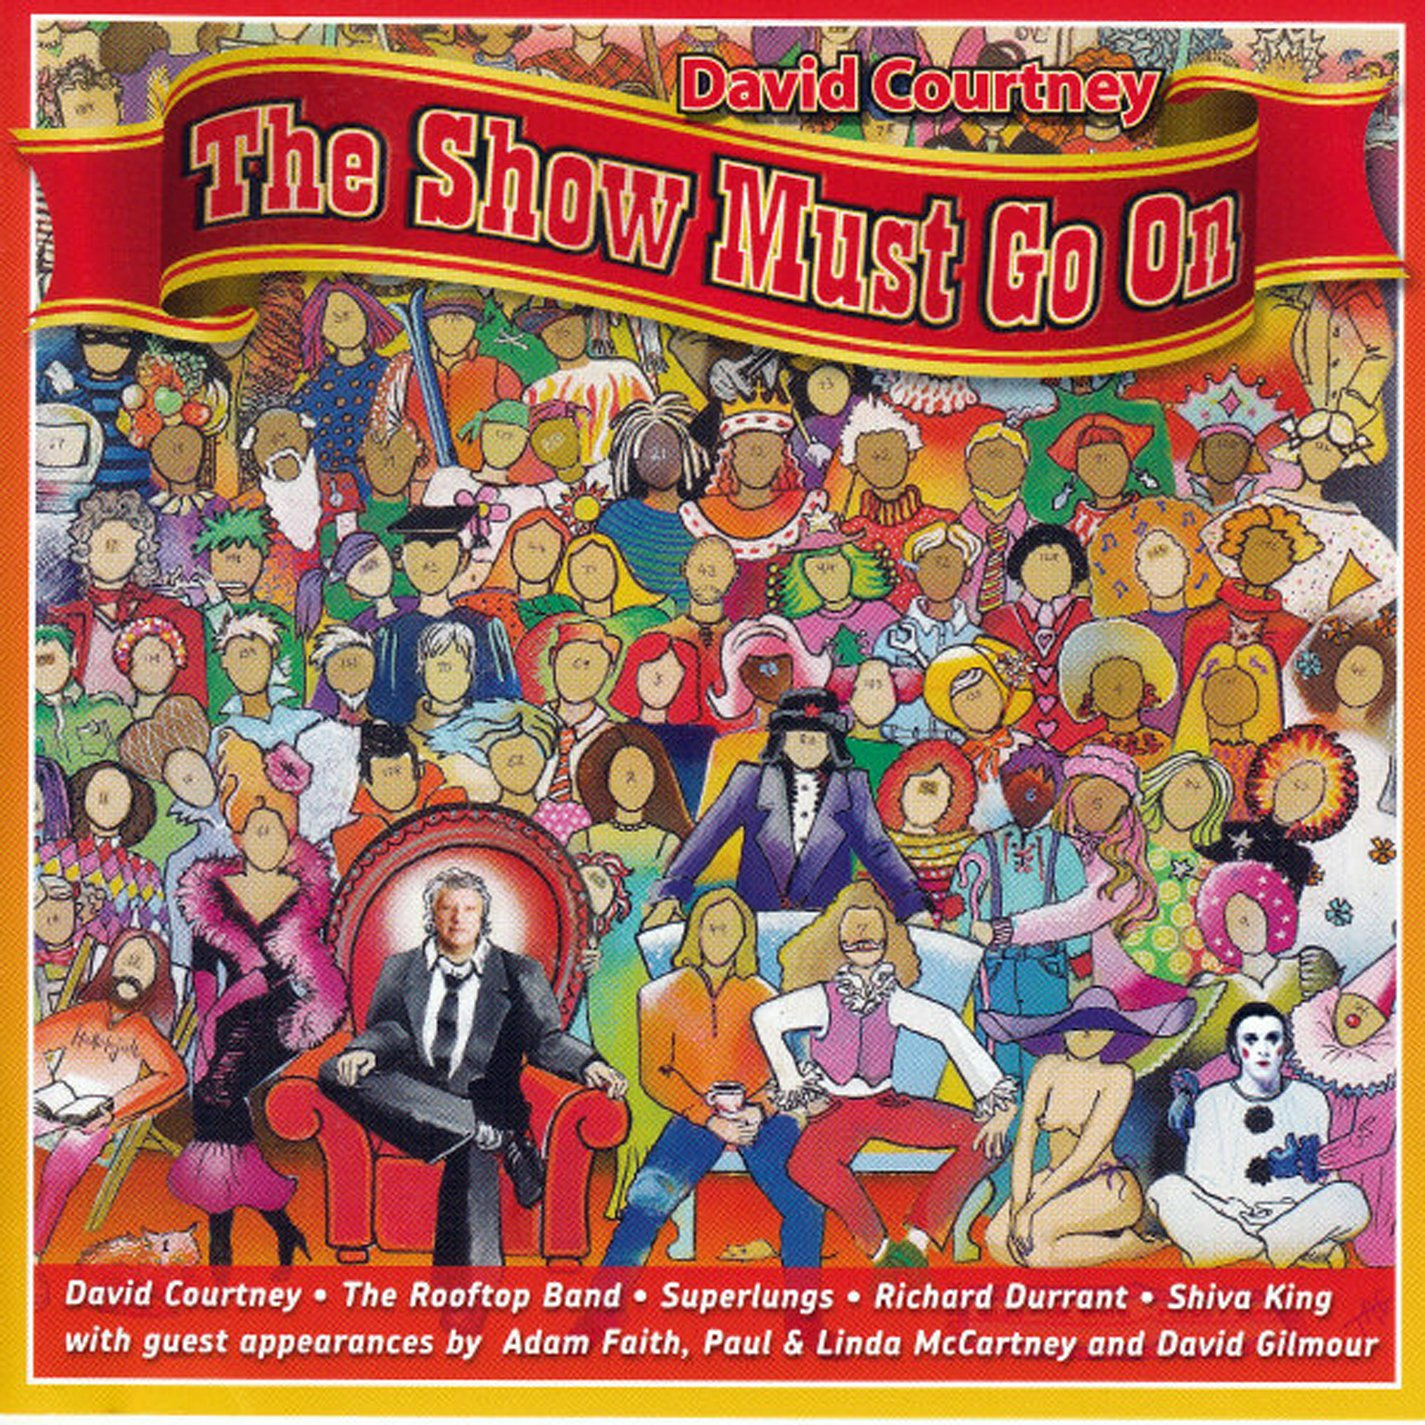 David Courtney's The Show Must Go On